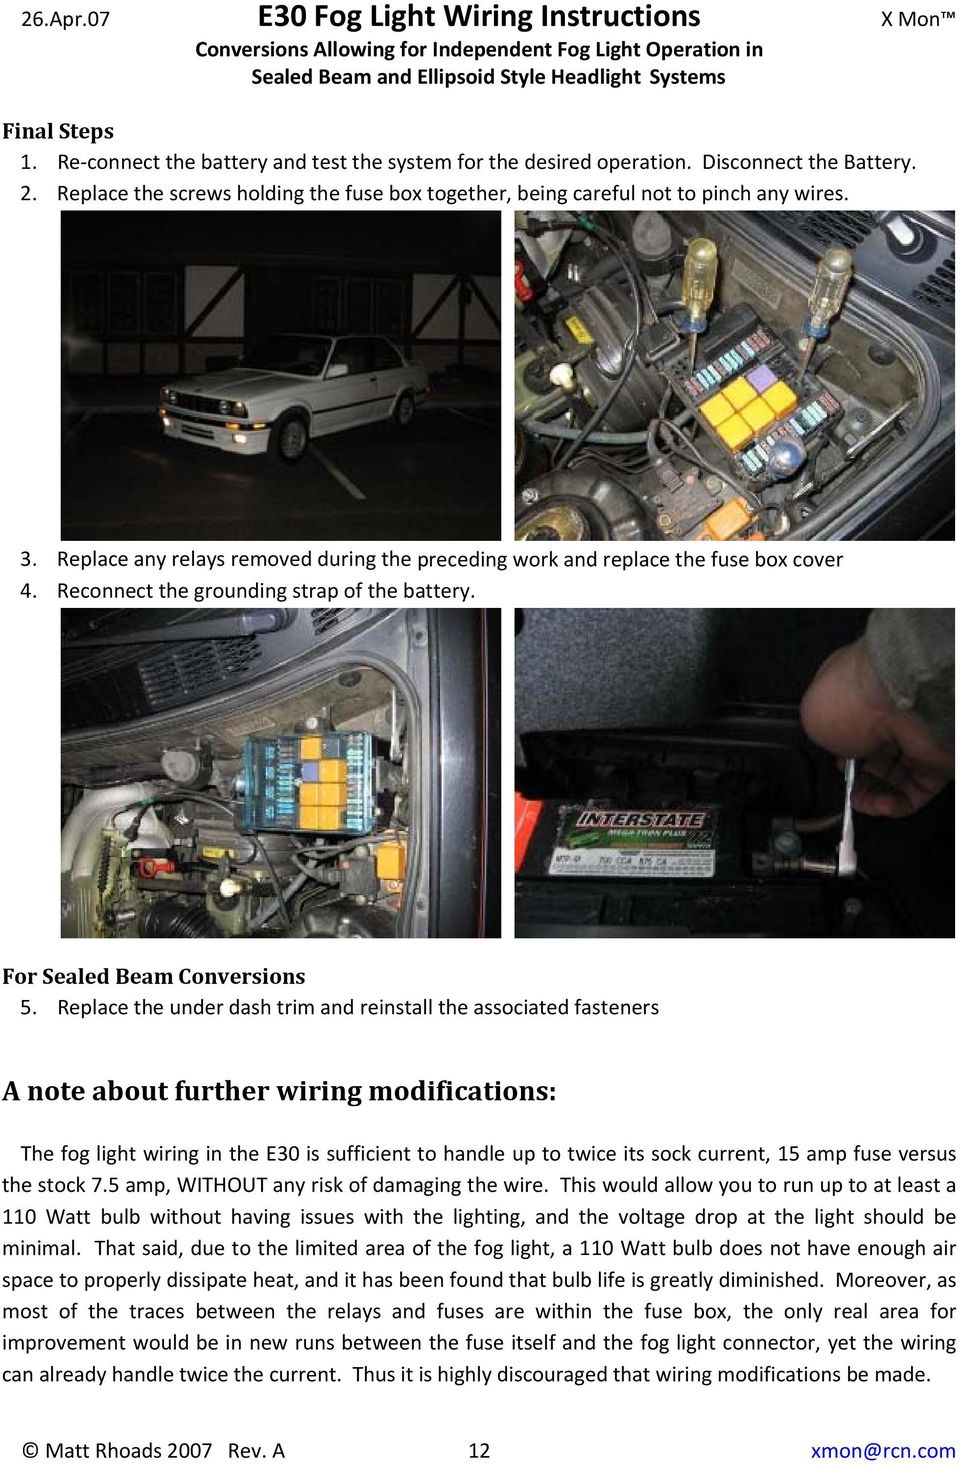 2007 Toyota Camry Under Hood Fuse Box E30 Fog Light Wiring Instructions Conversions Allowing For Replace The Dash Trim And Reinstall Associated Fasteners A Note About Further Modifications